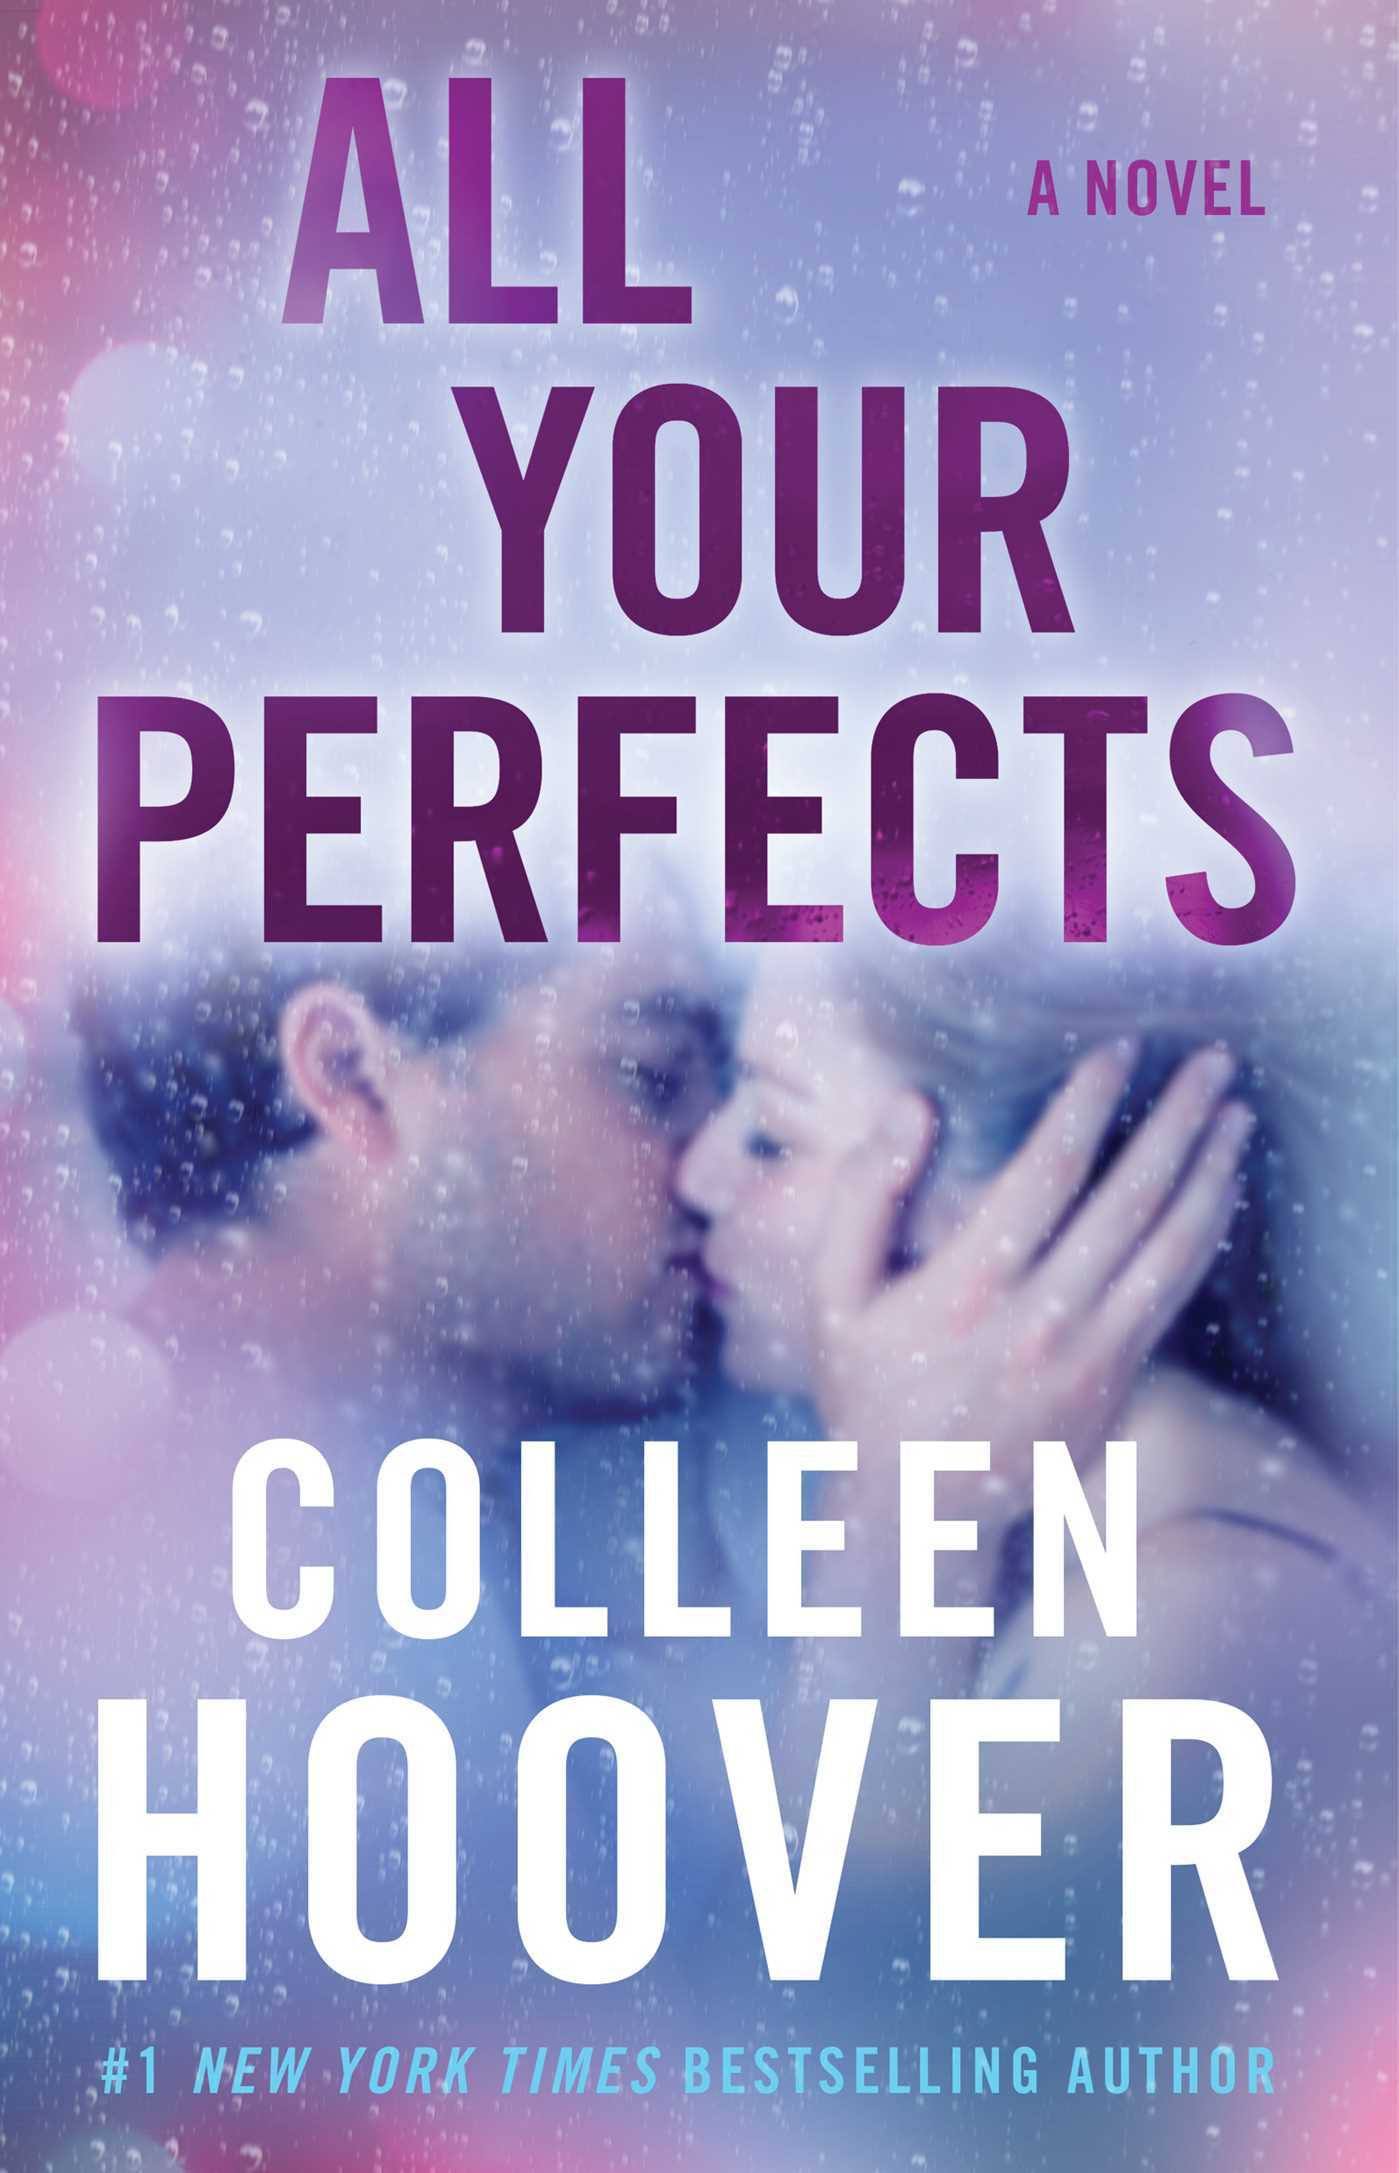 Colleen Hoover - All Your Perfects